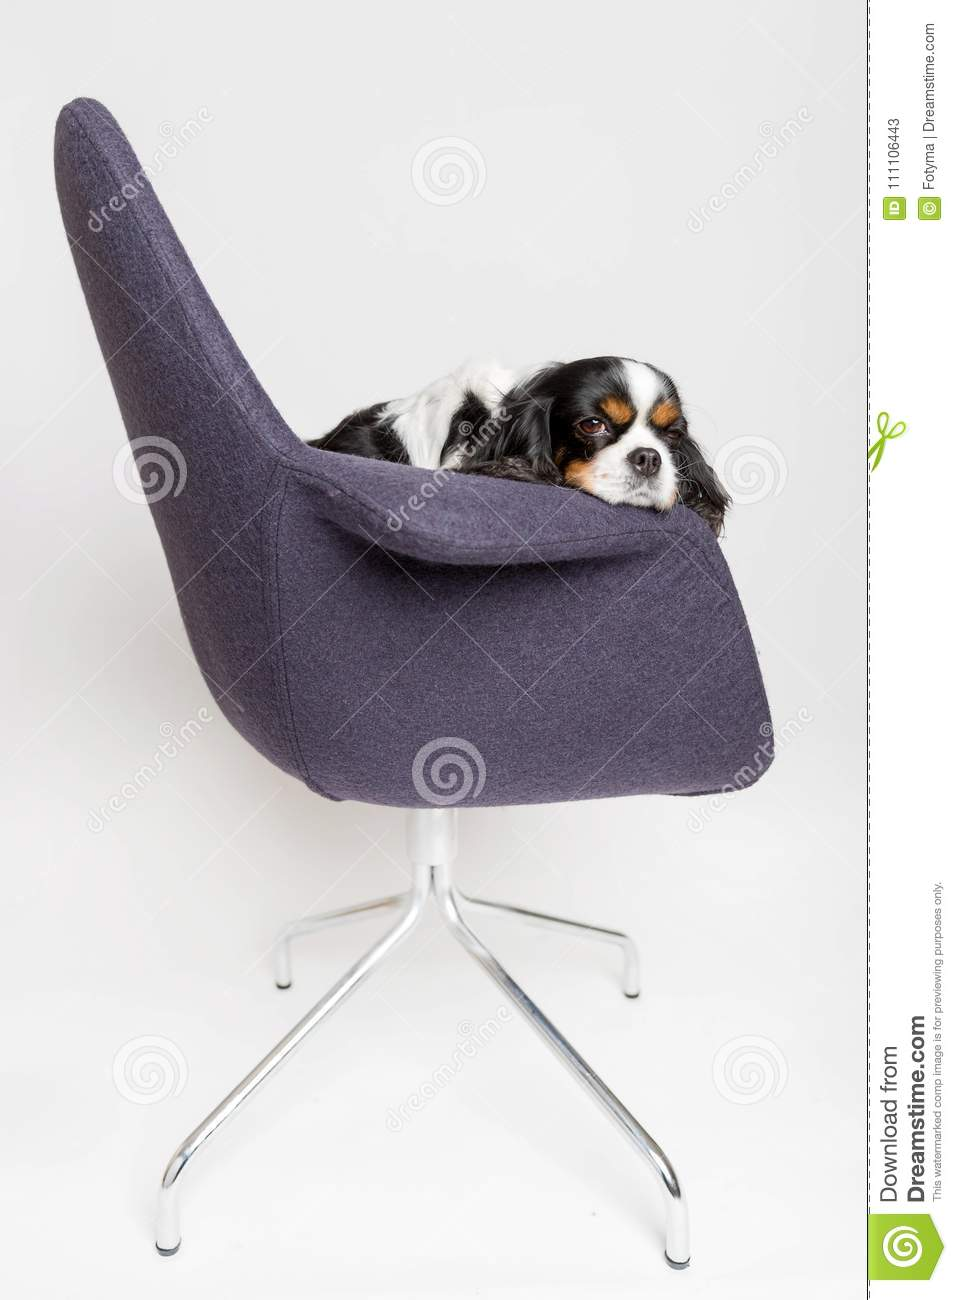 Cute Swivel Chair Dog Sitting On The Swivel Chair Stock Image Image Of Funny Cute